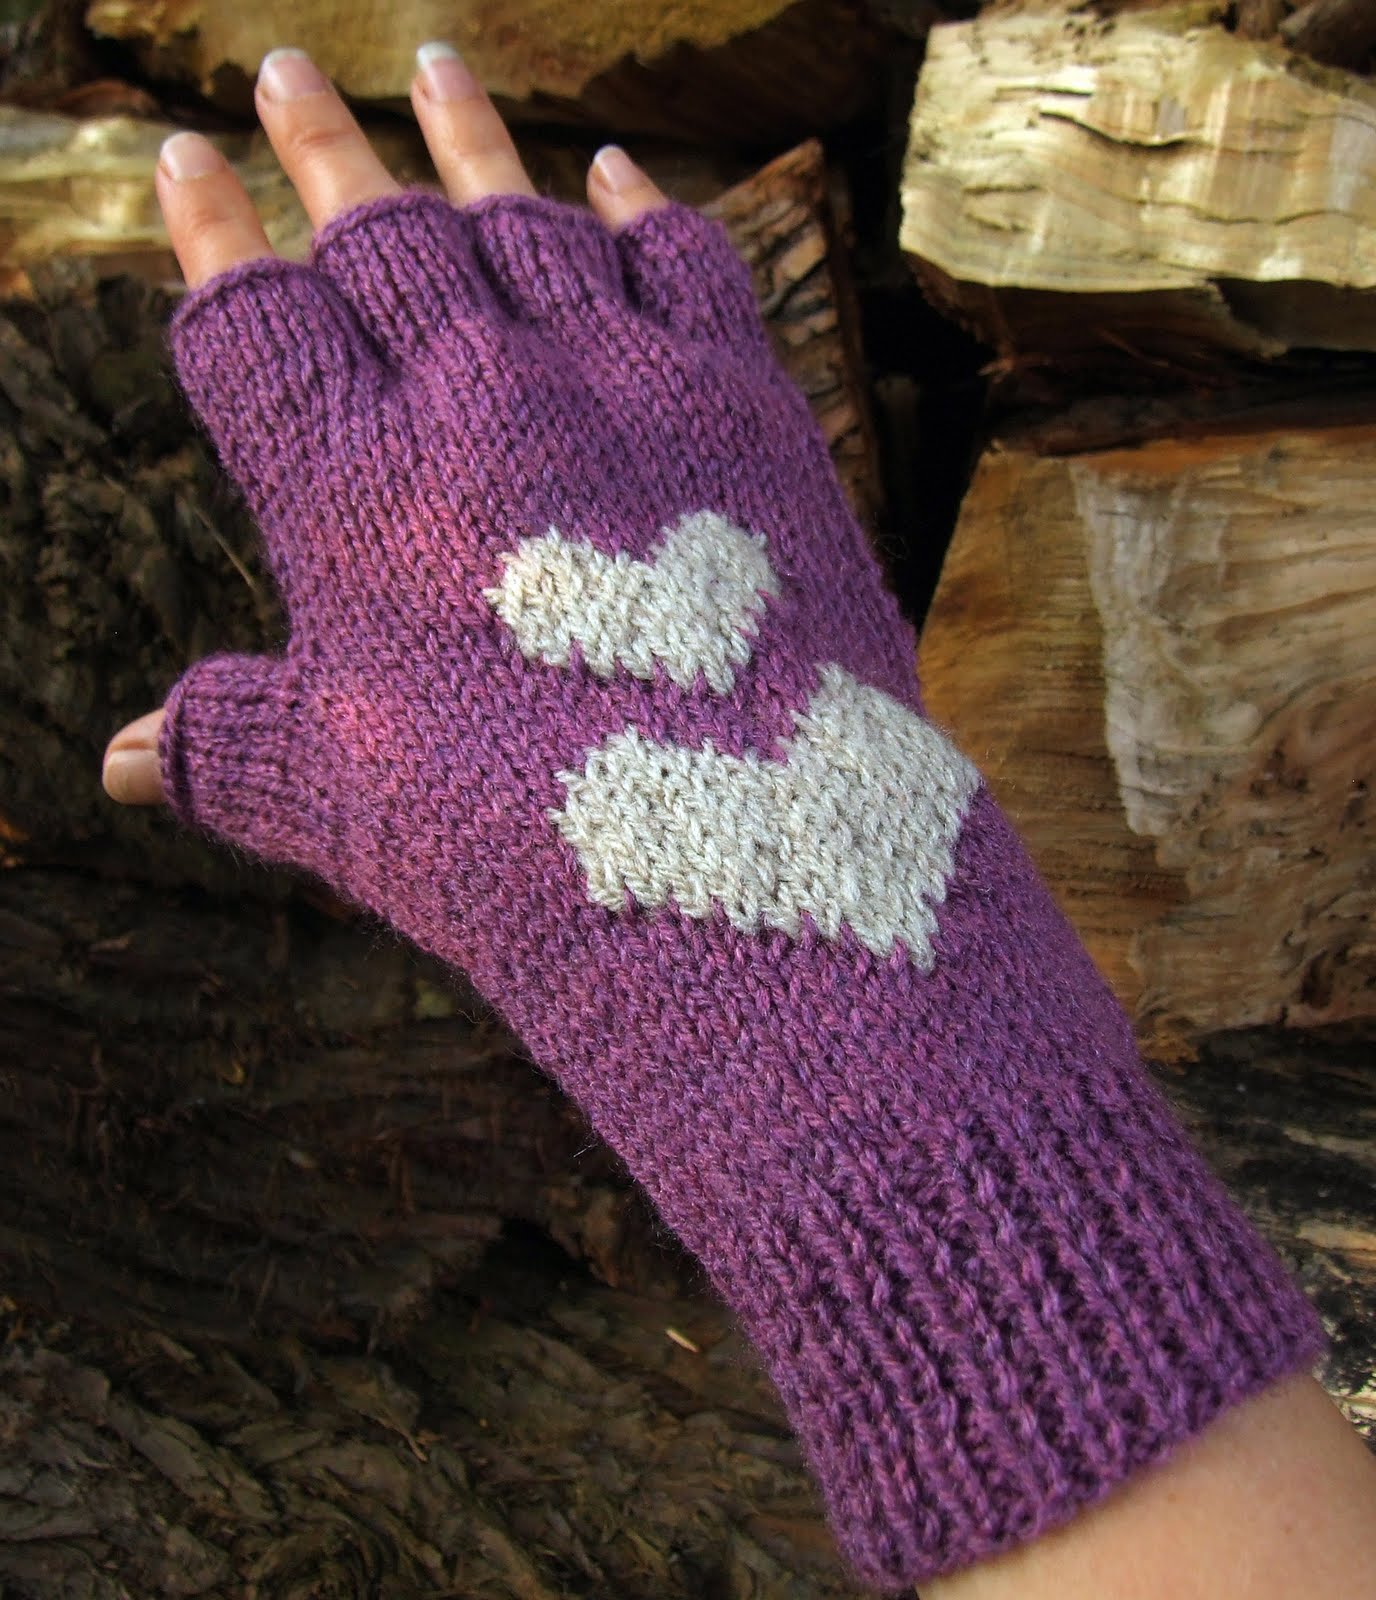 Knitted Glove Patterns : Fingerless Gloves Knitting Pattern A Knitting Blog